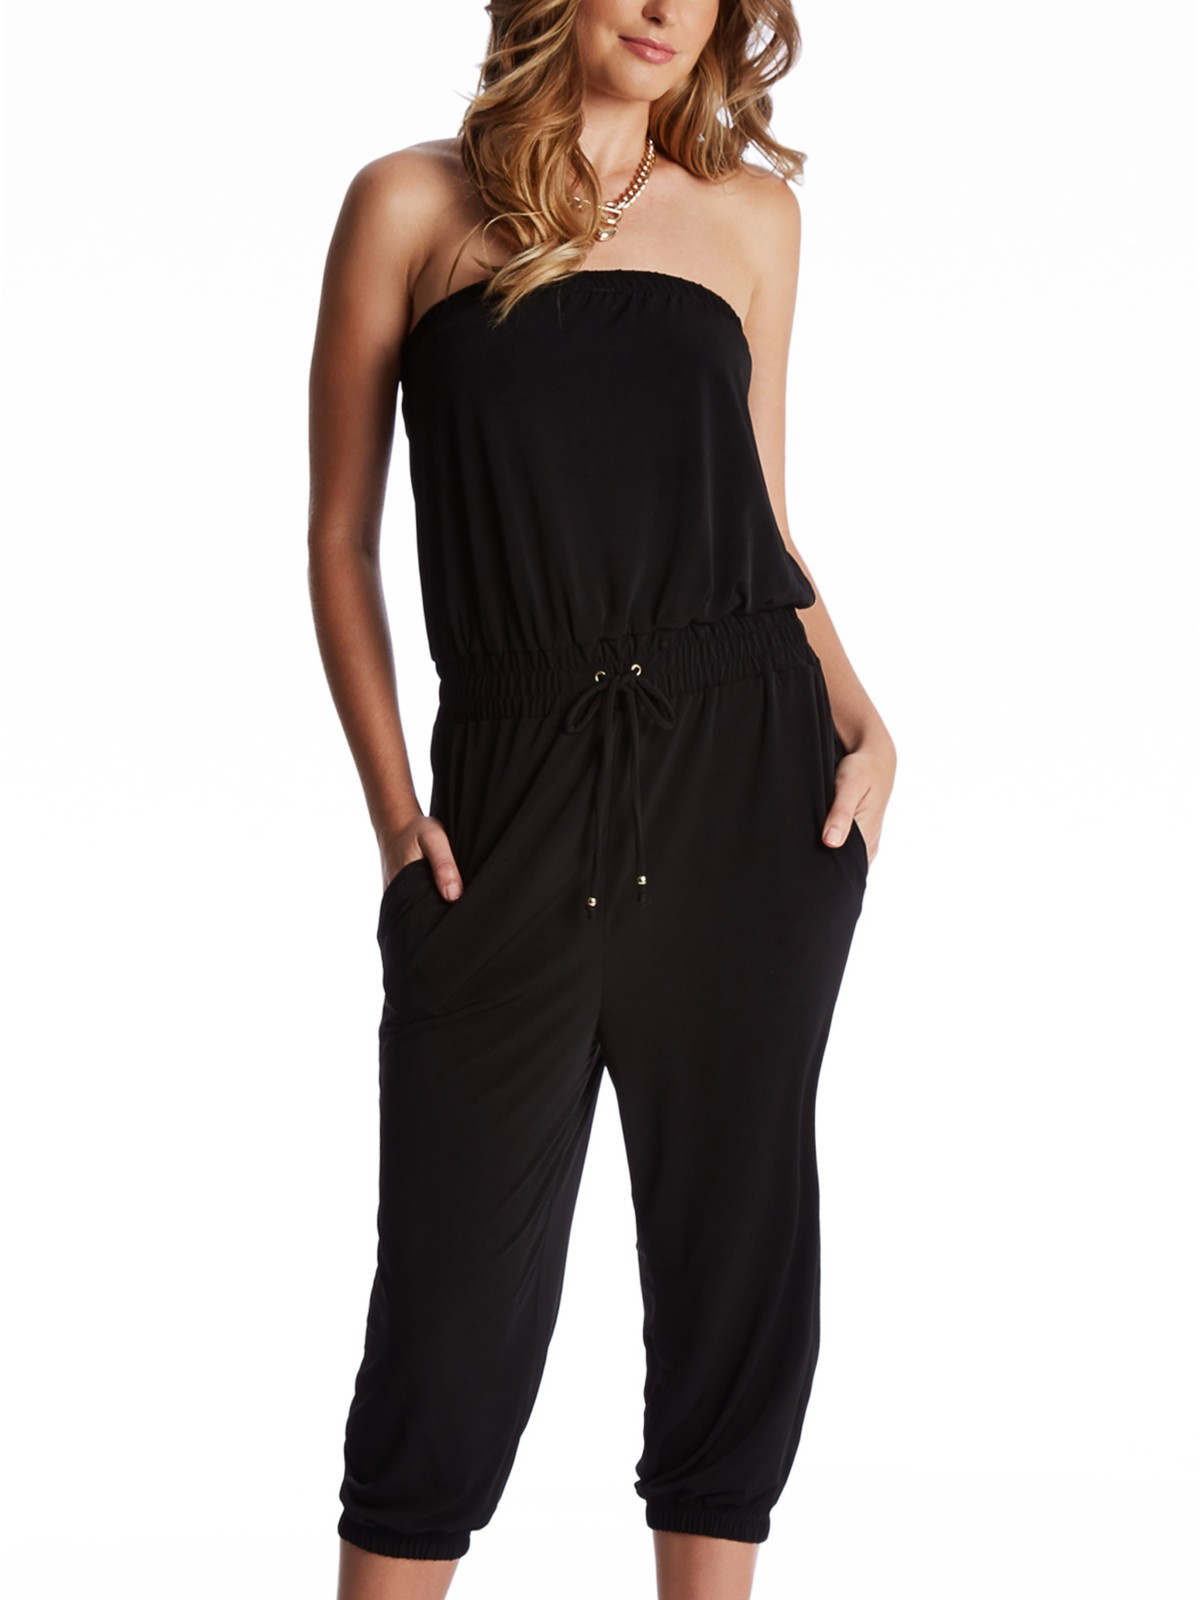 Find great deals on eBay for capri rompers. Shop with confidence.